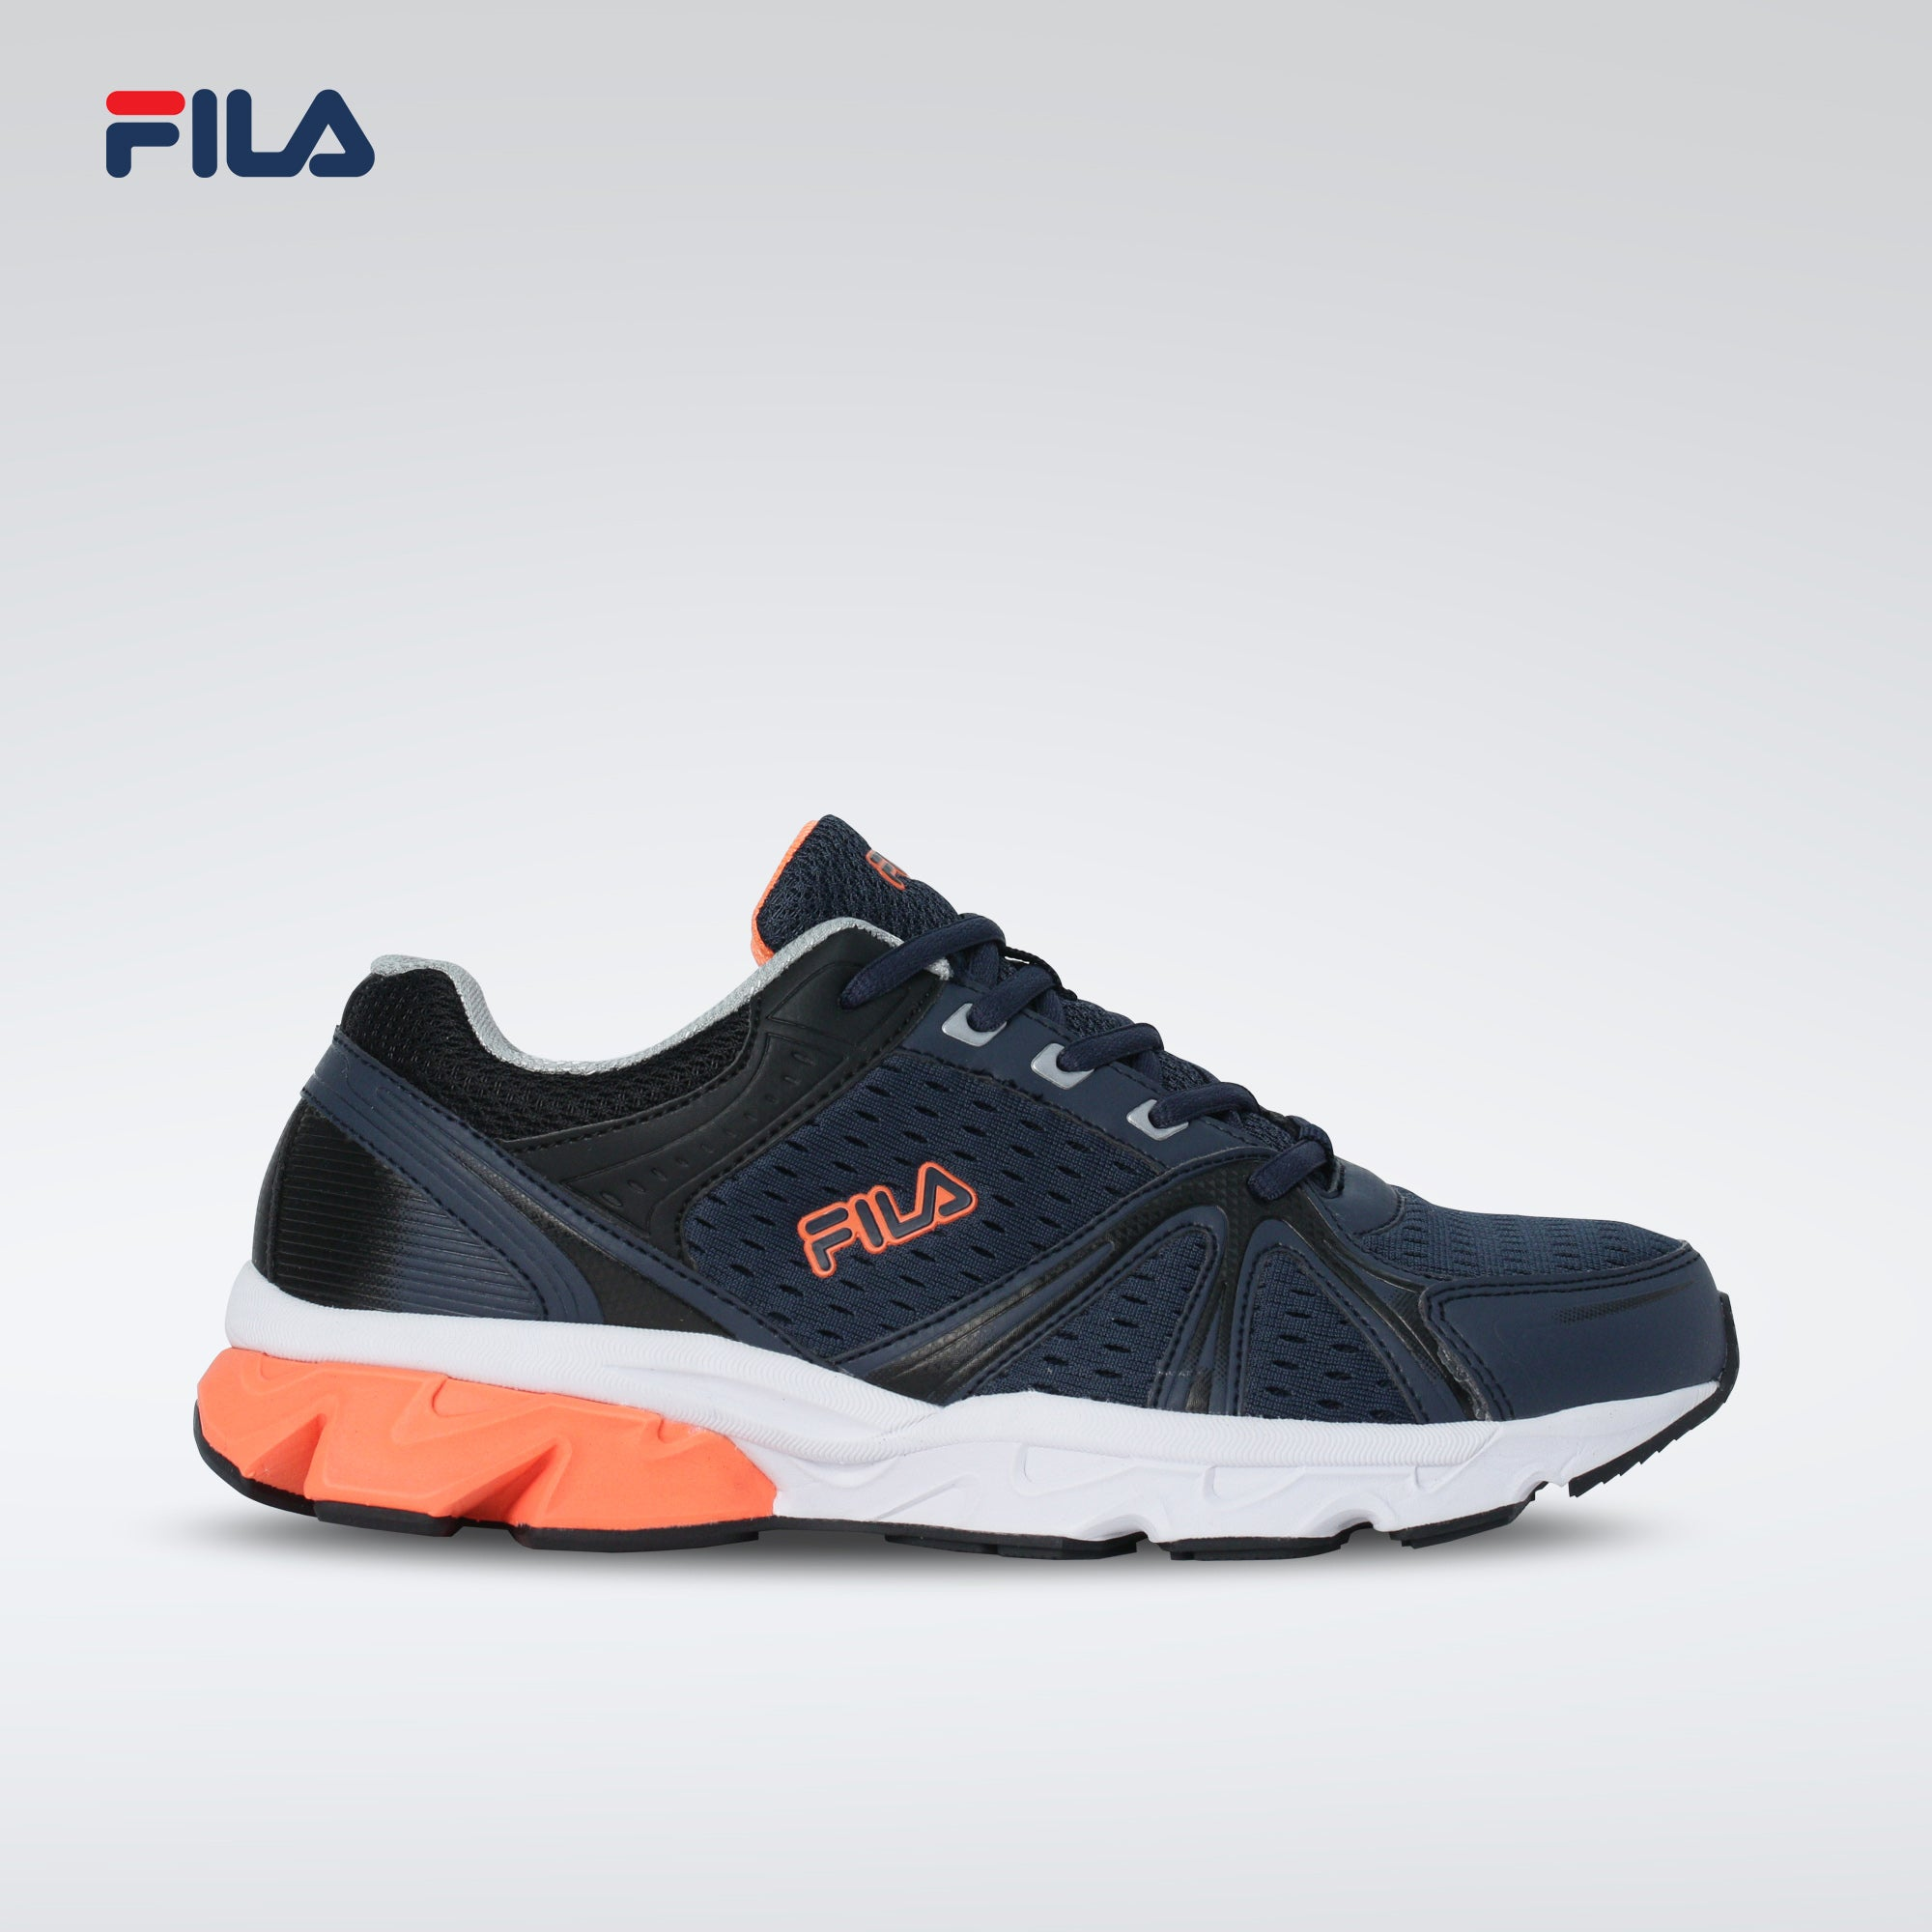 Fila Shoes Saber Tailwind Speed (Navy/Black)